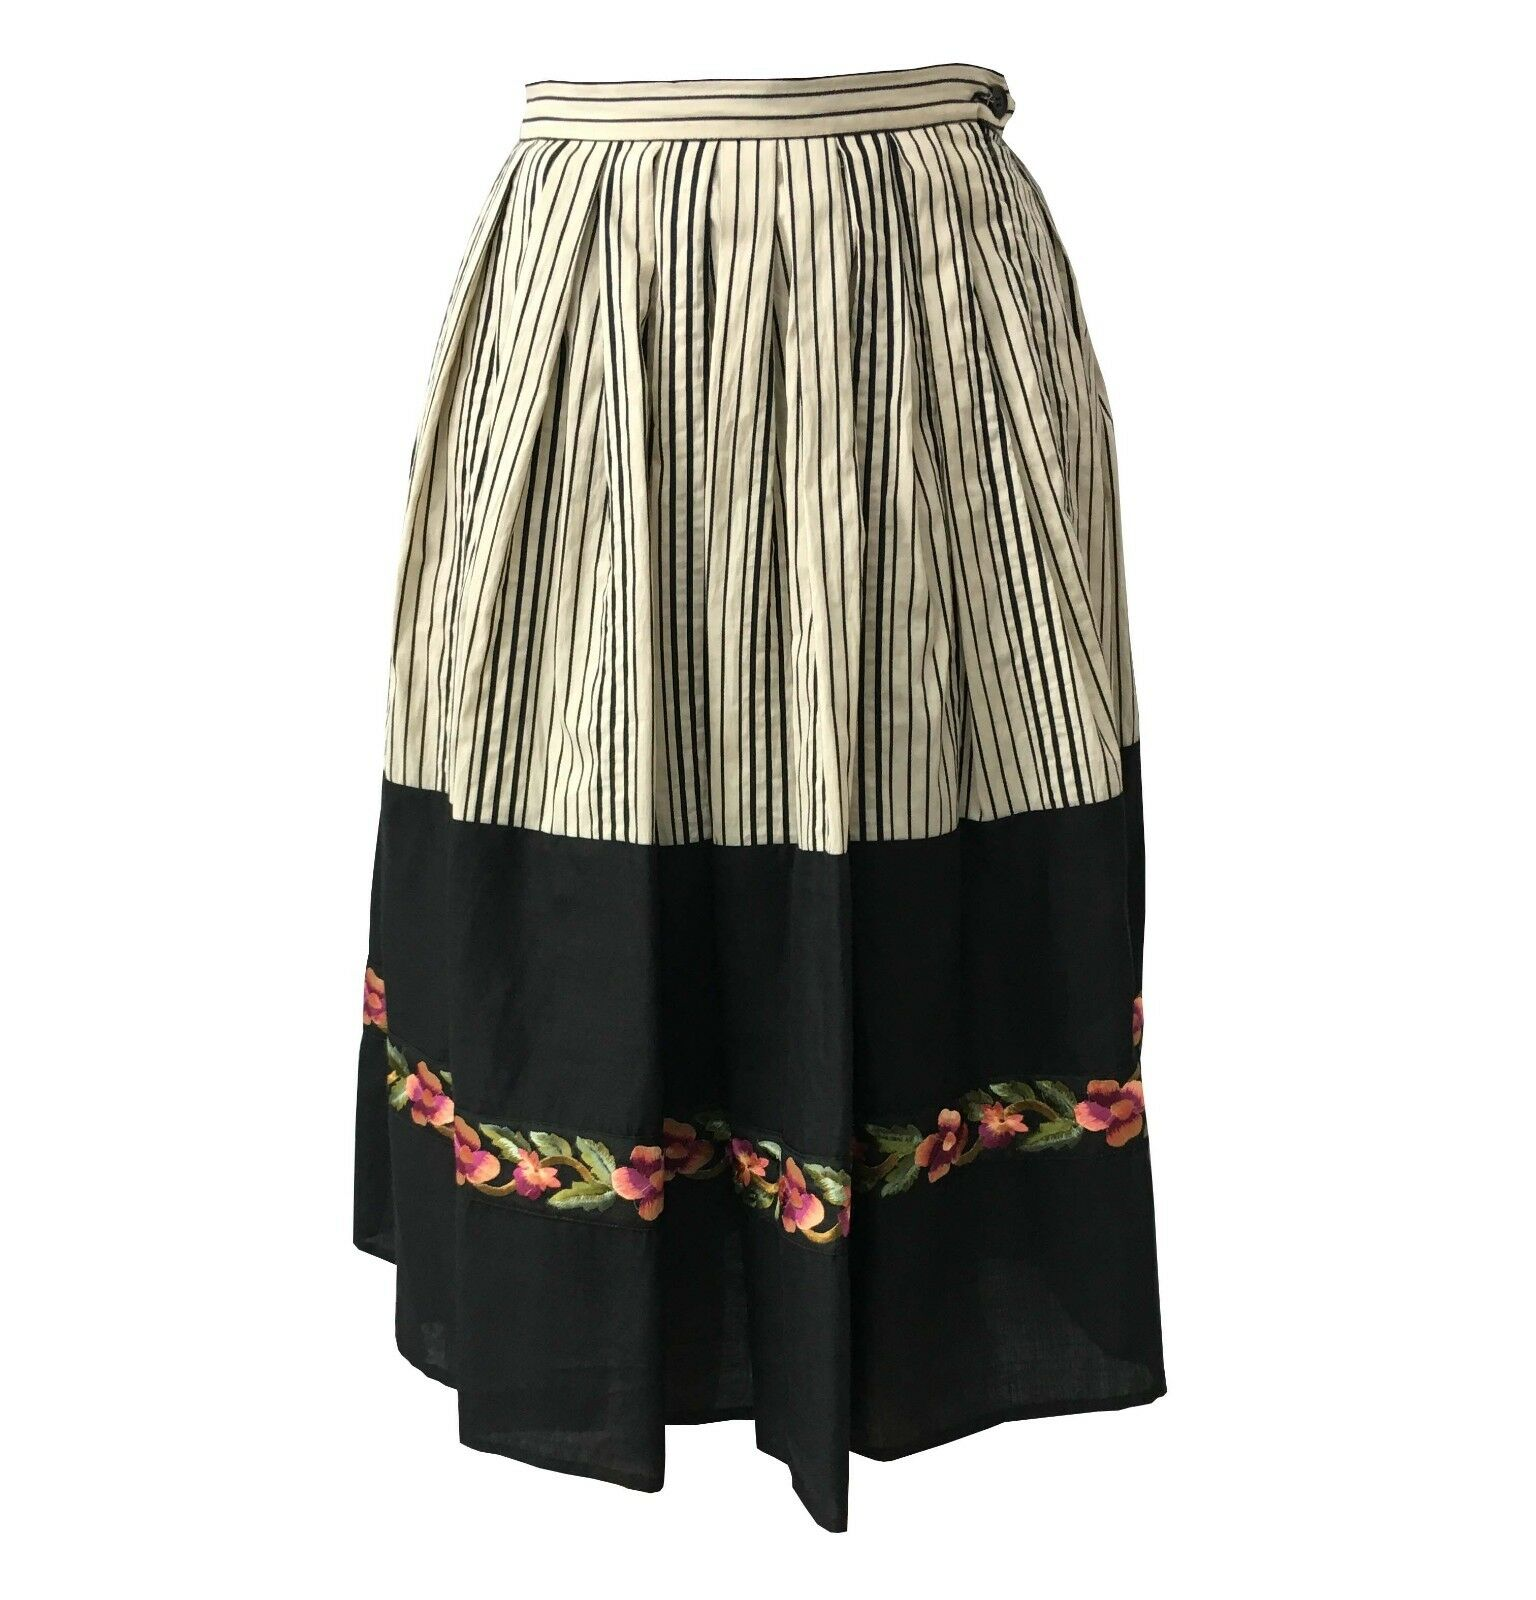 release info on recognized brands hot new products Details about Attic and Barn Skirt Woman Ecru/Black with Details Mod. Frida  Made in Italy